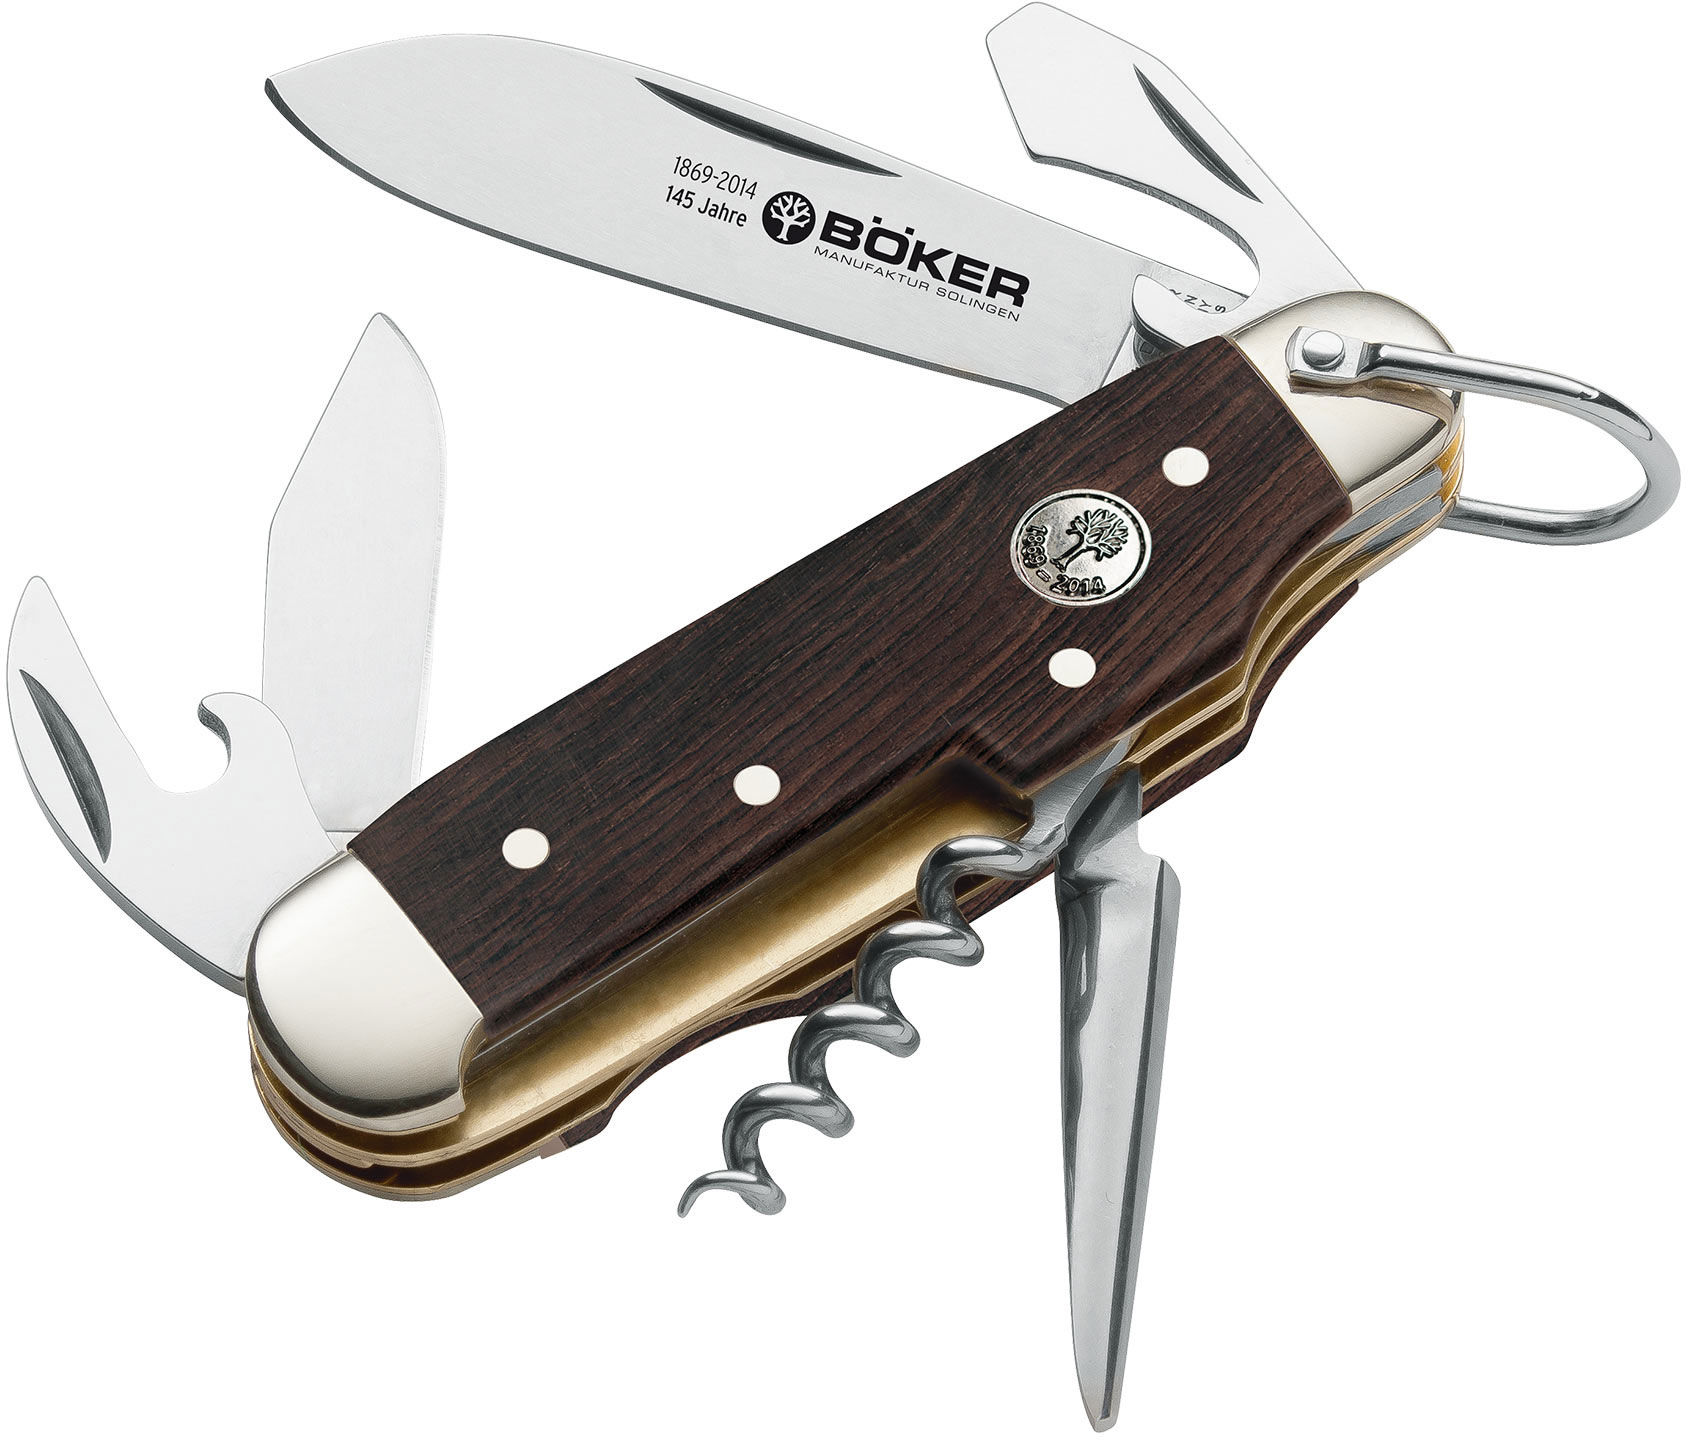 Buy Boker Camp Knives at KnifeCenter